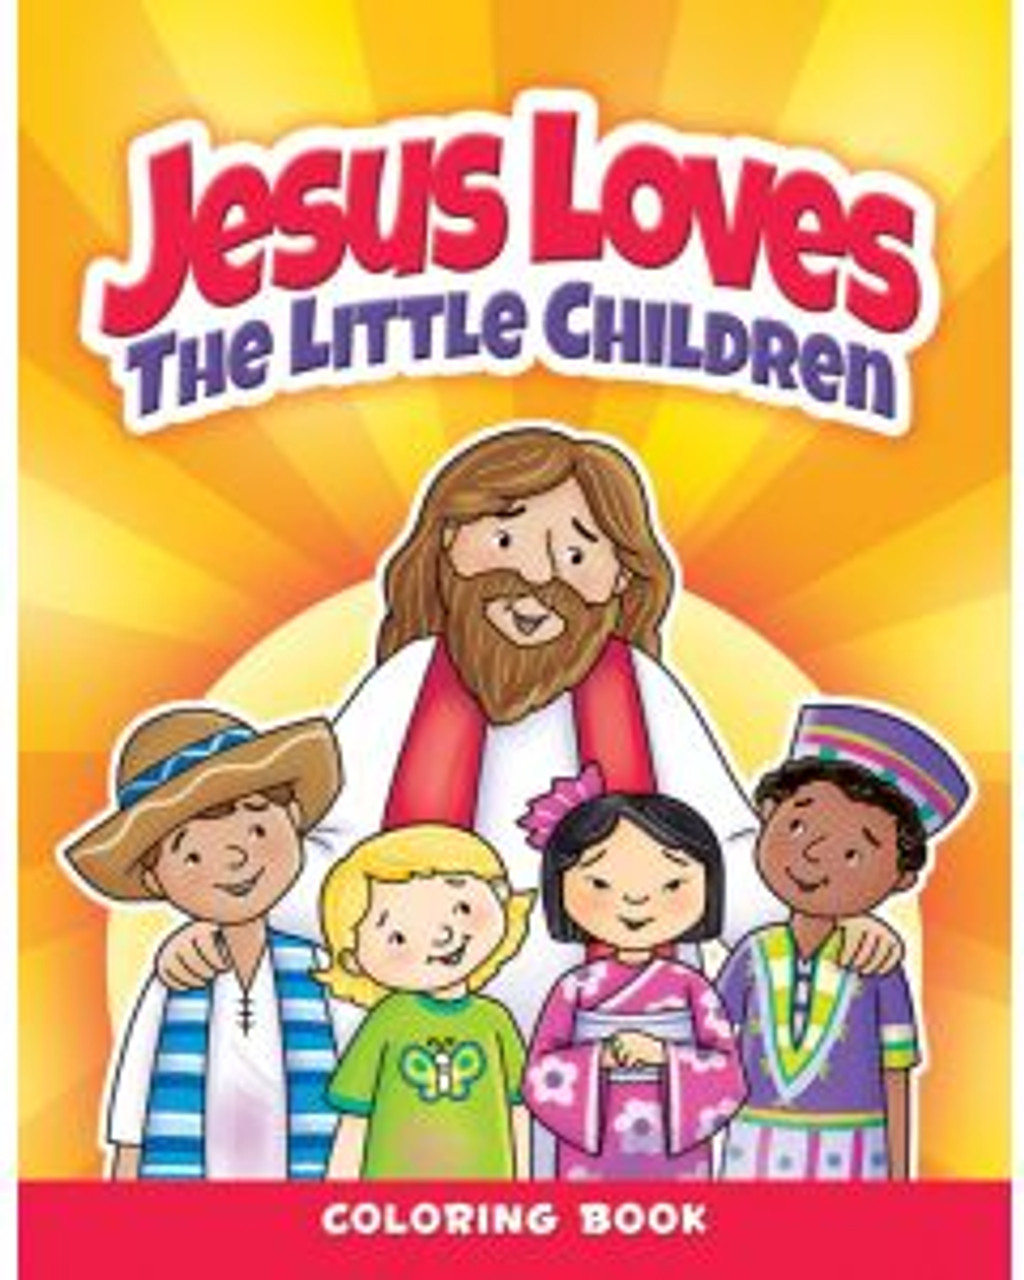 Jesus Loves The Little Children (coloring book)